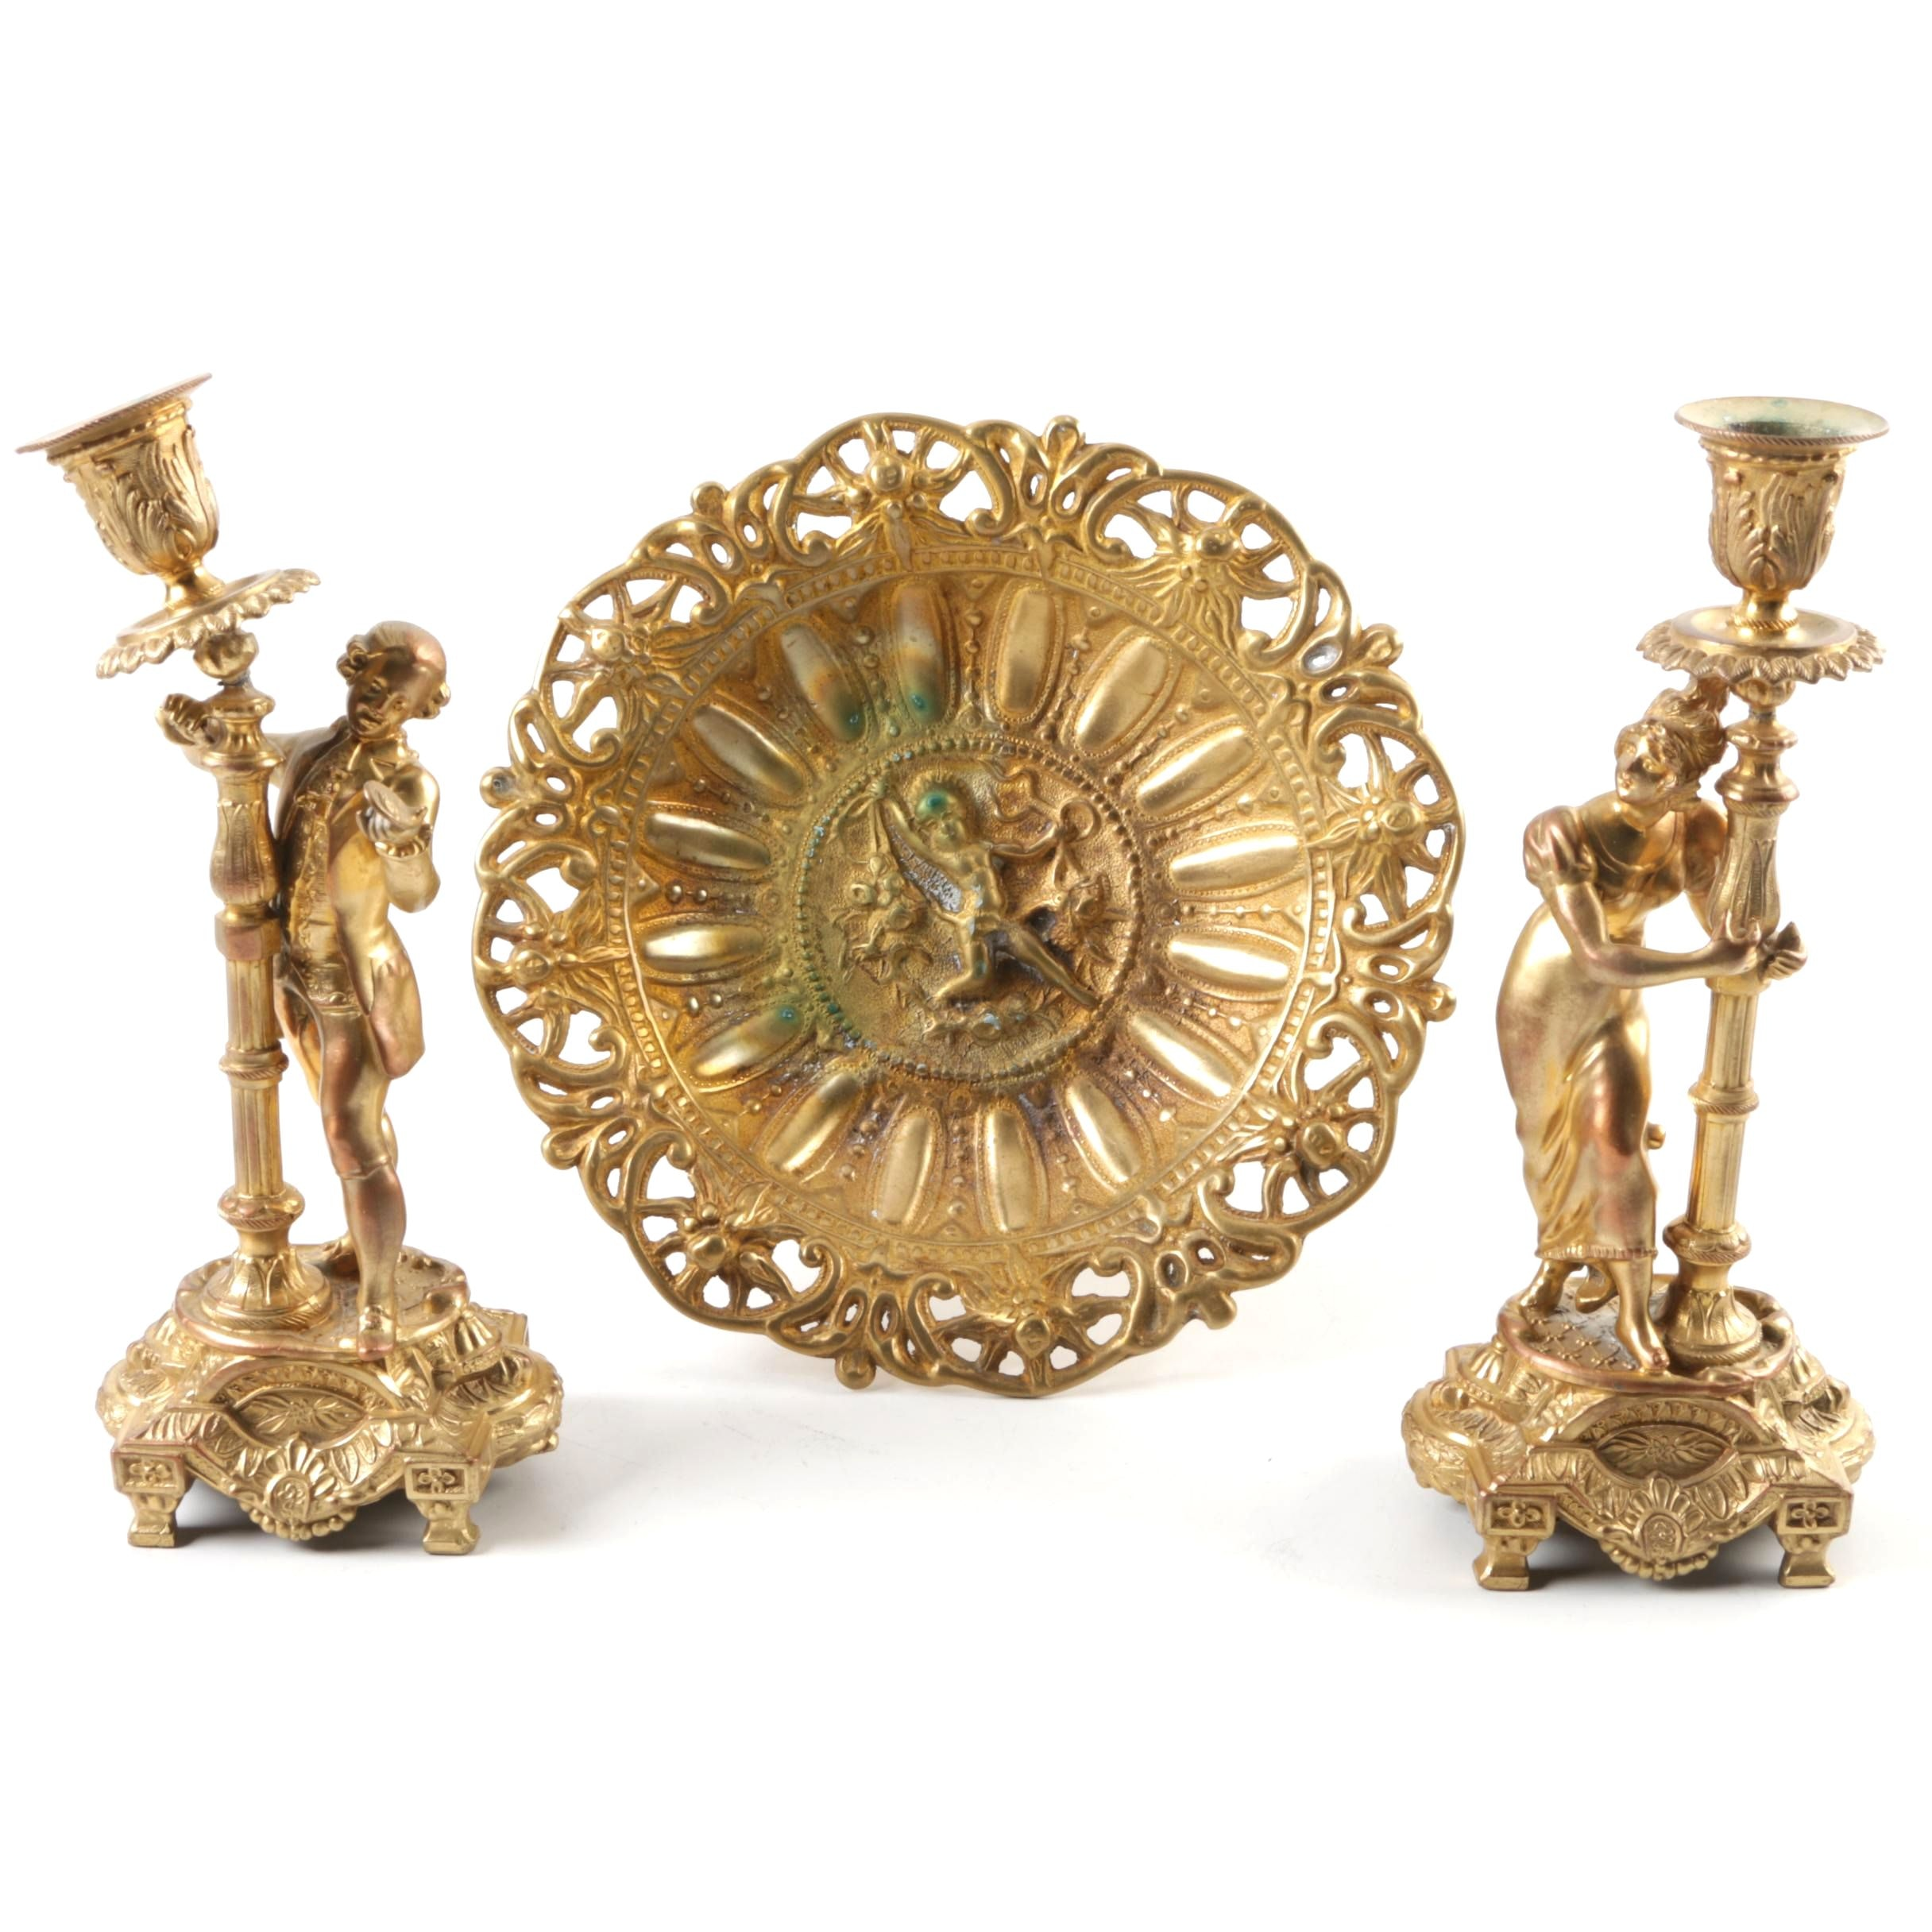 Brass Figural Candlestick Holders and Tray